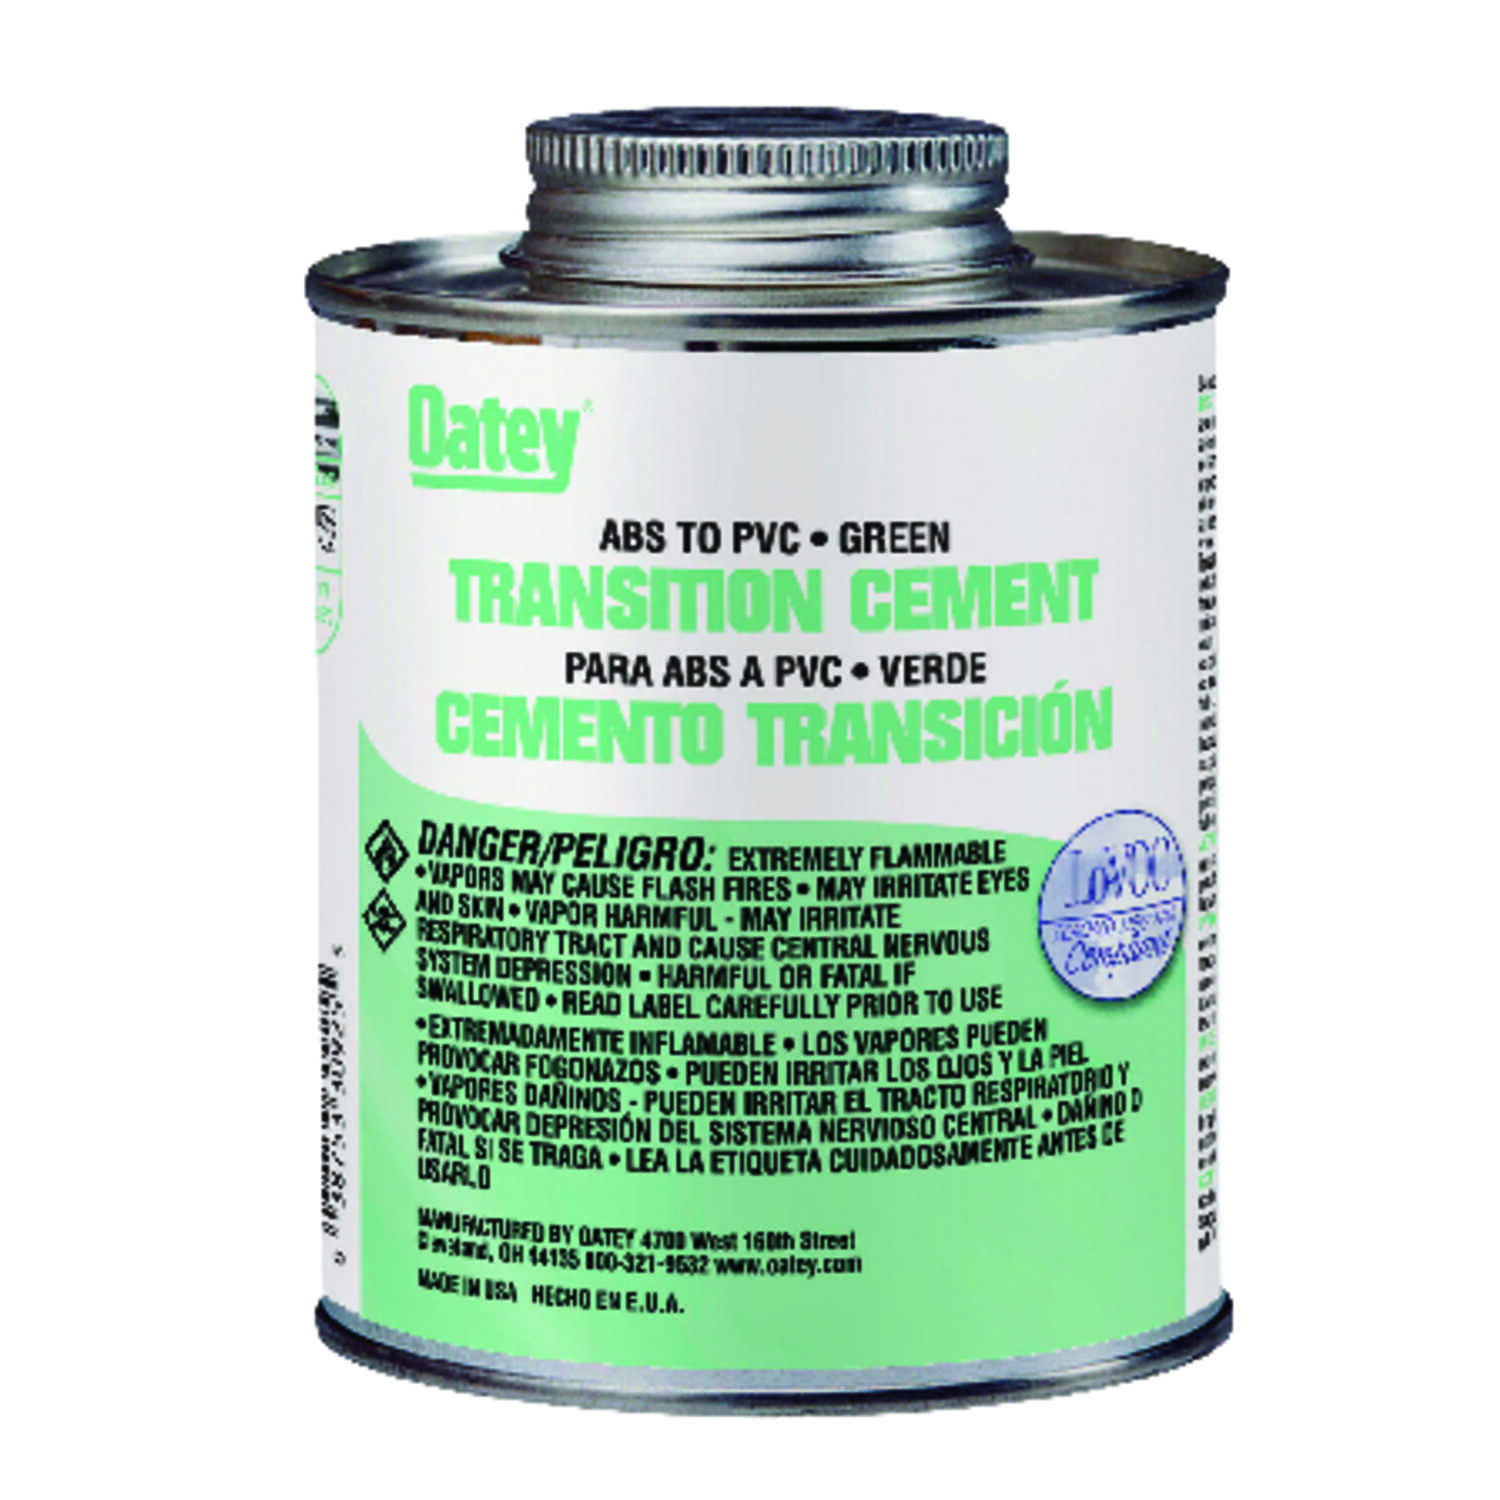 Oatey  Transition Cement  For ABS/PVC 4 oz. Green